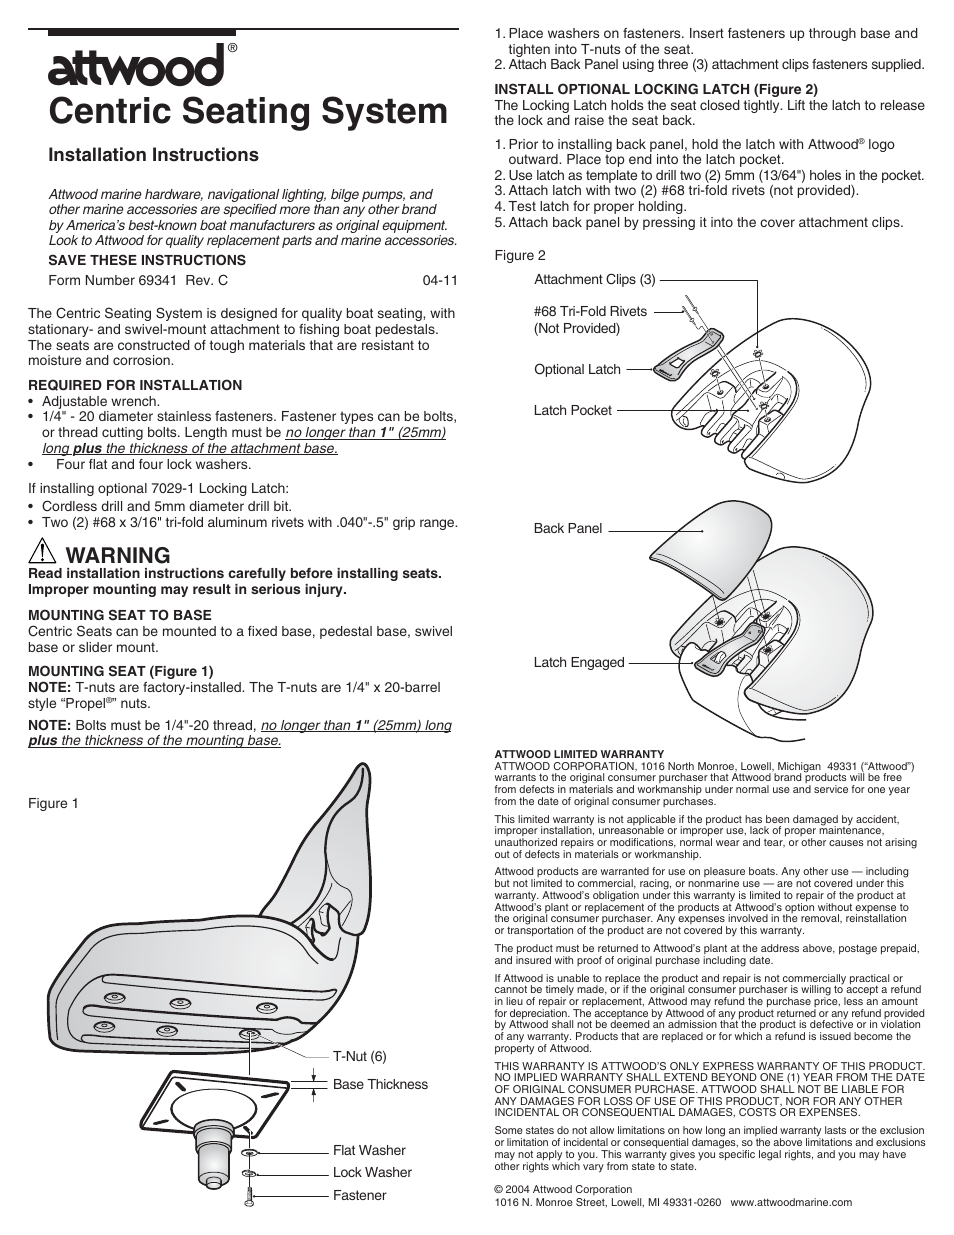 Attwood 69341 User Manual 1 Page Also For Centric 2 Bilge Pump Wiring Diagram Seating System